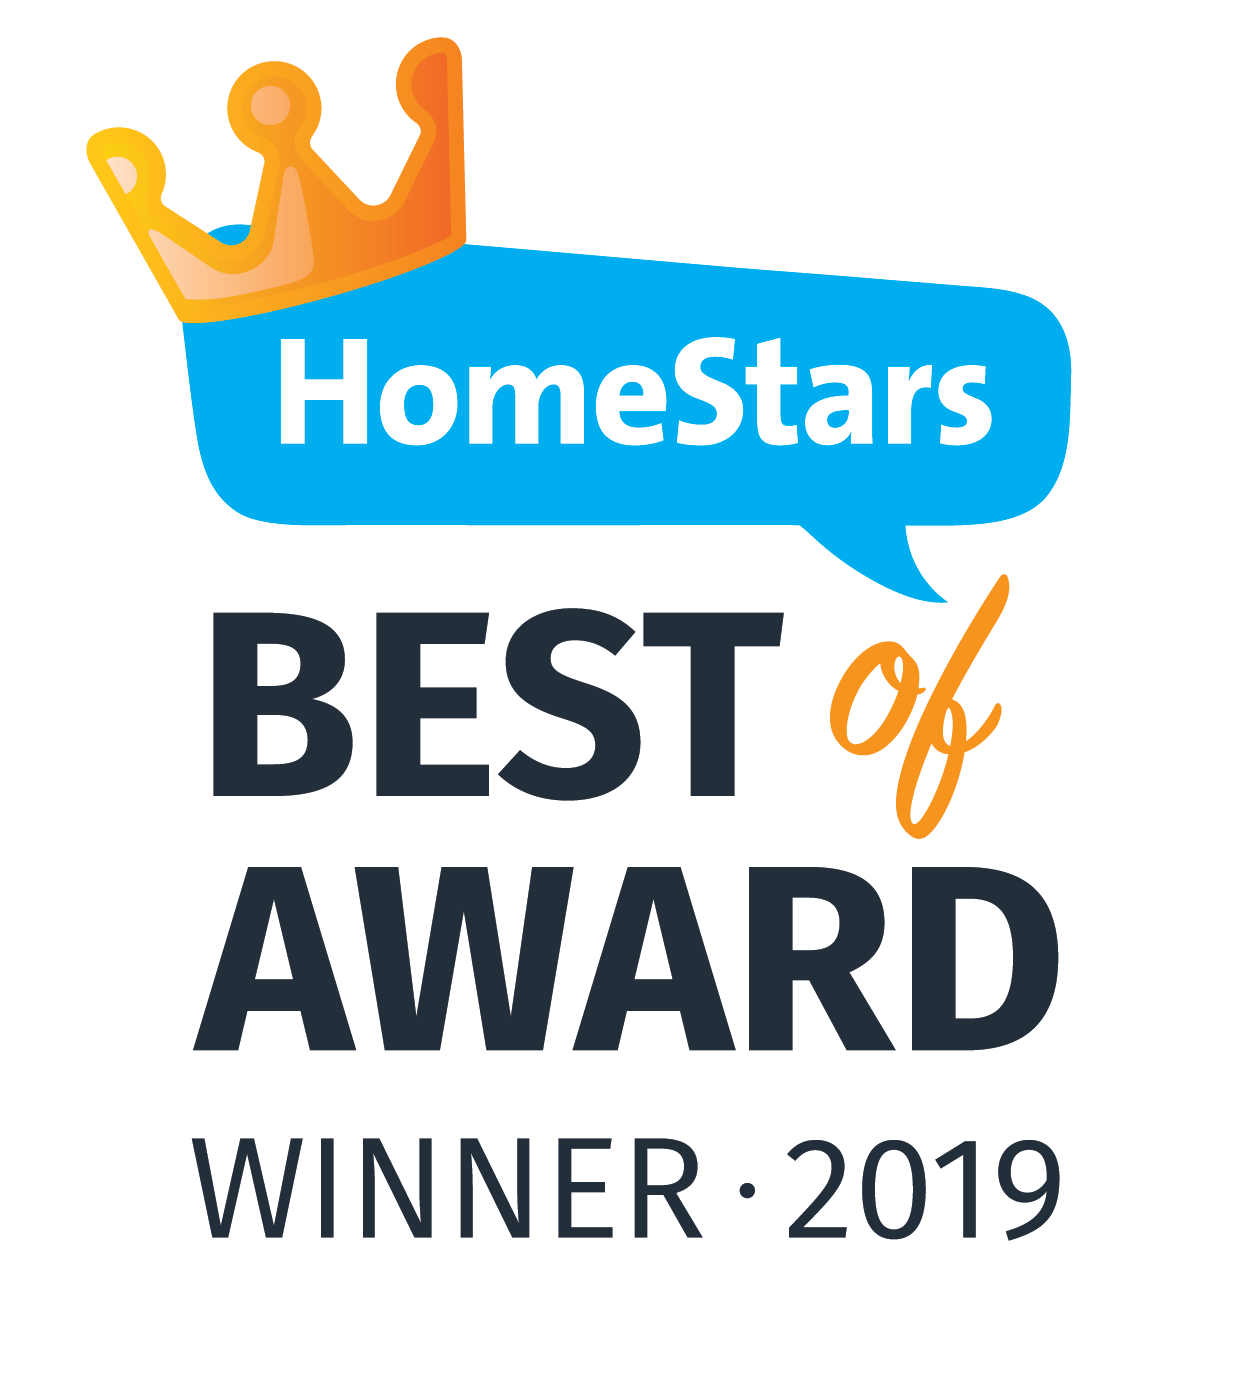 Homestars Best Of Award Winner 2019